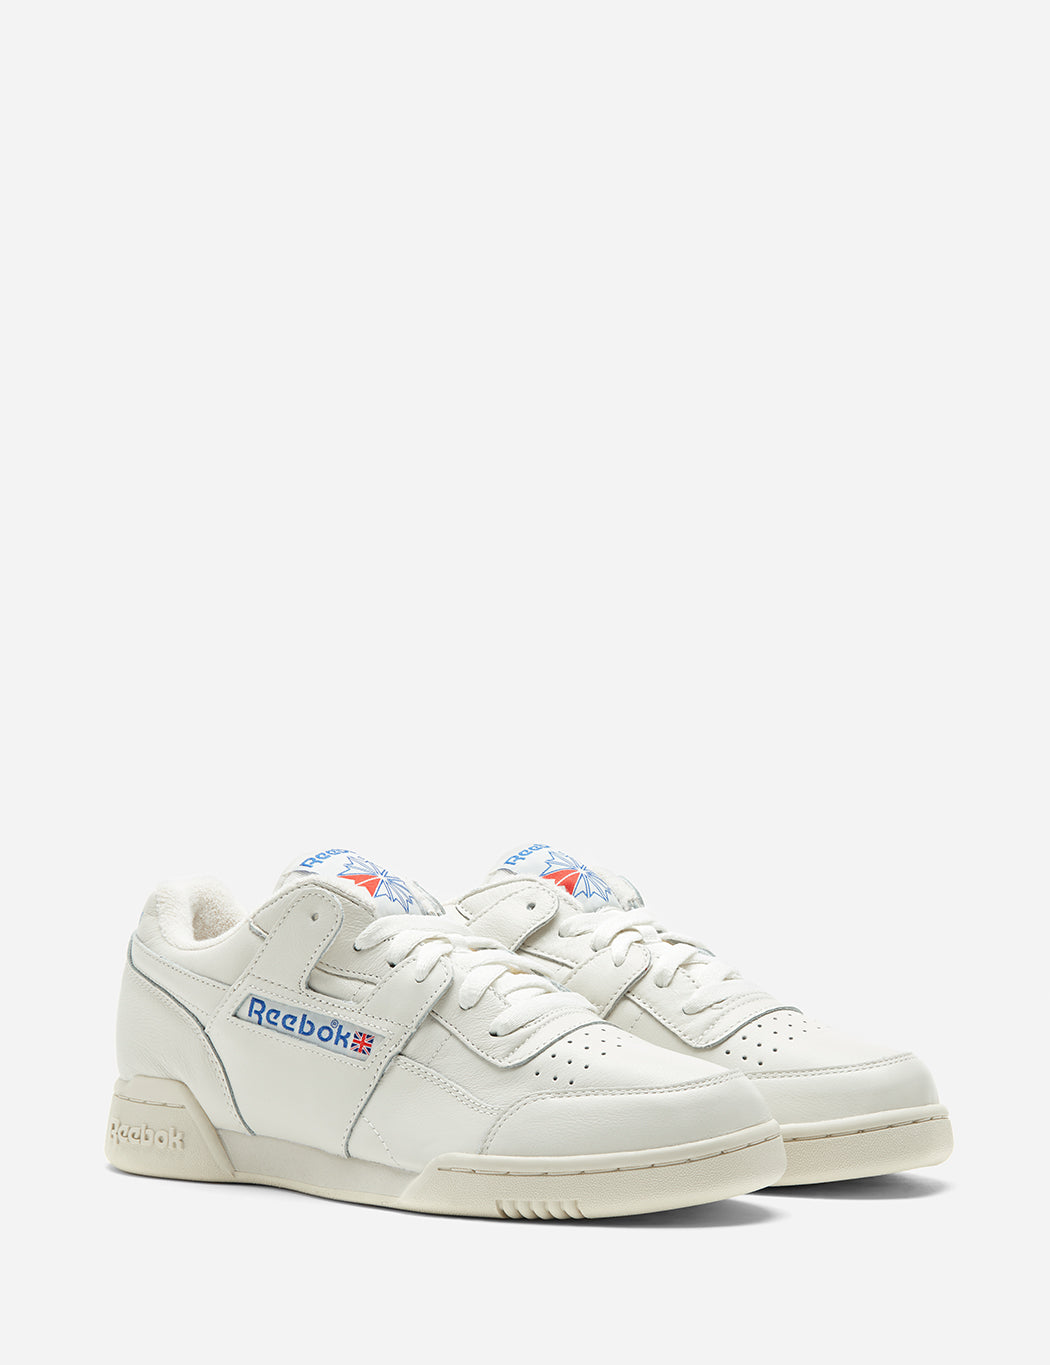 2b8ccb488d5a7 ... Reebok Workout Plus 1987 TV (DV6435) - Chalk Paper White Green ...